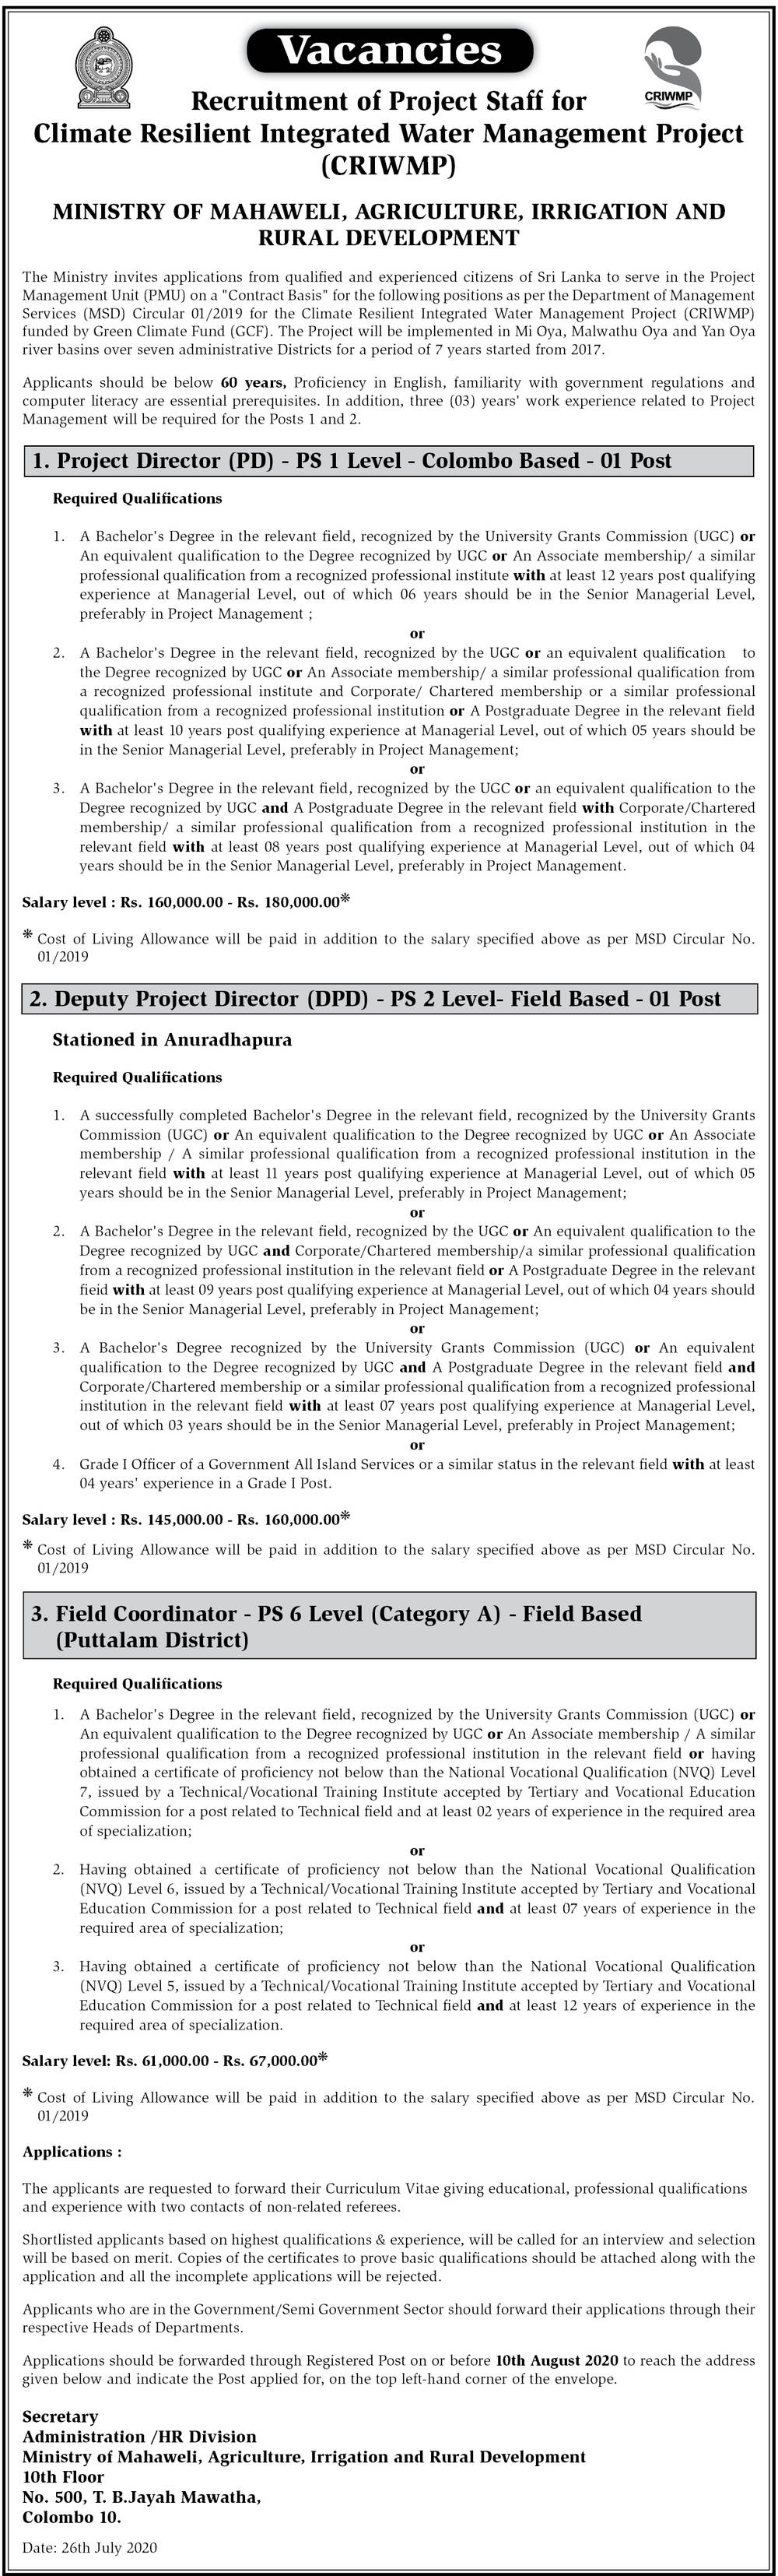 Field Coordinator, Project Director, Deputy Project Director - Ministry of Mahaweli, Agriculture, Irrigation & Rural Development